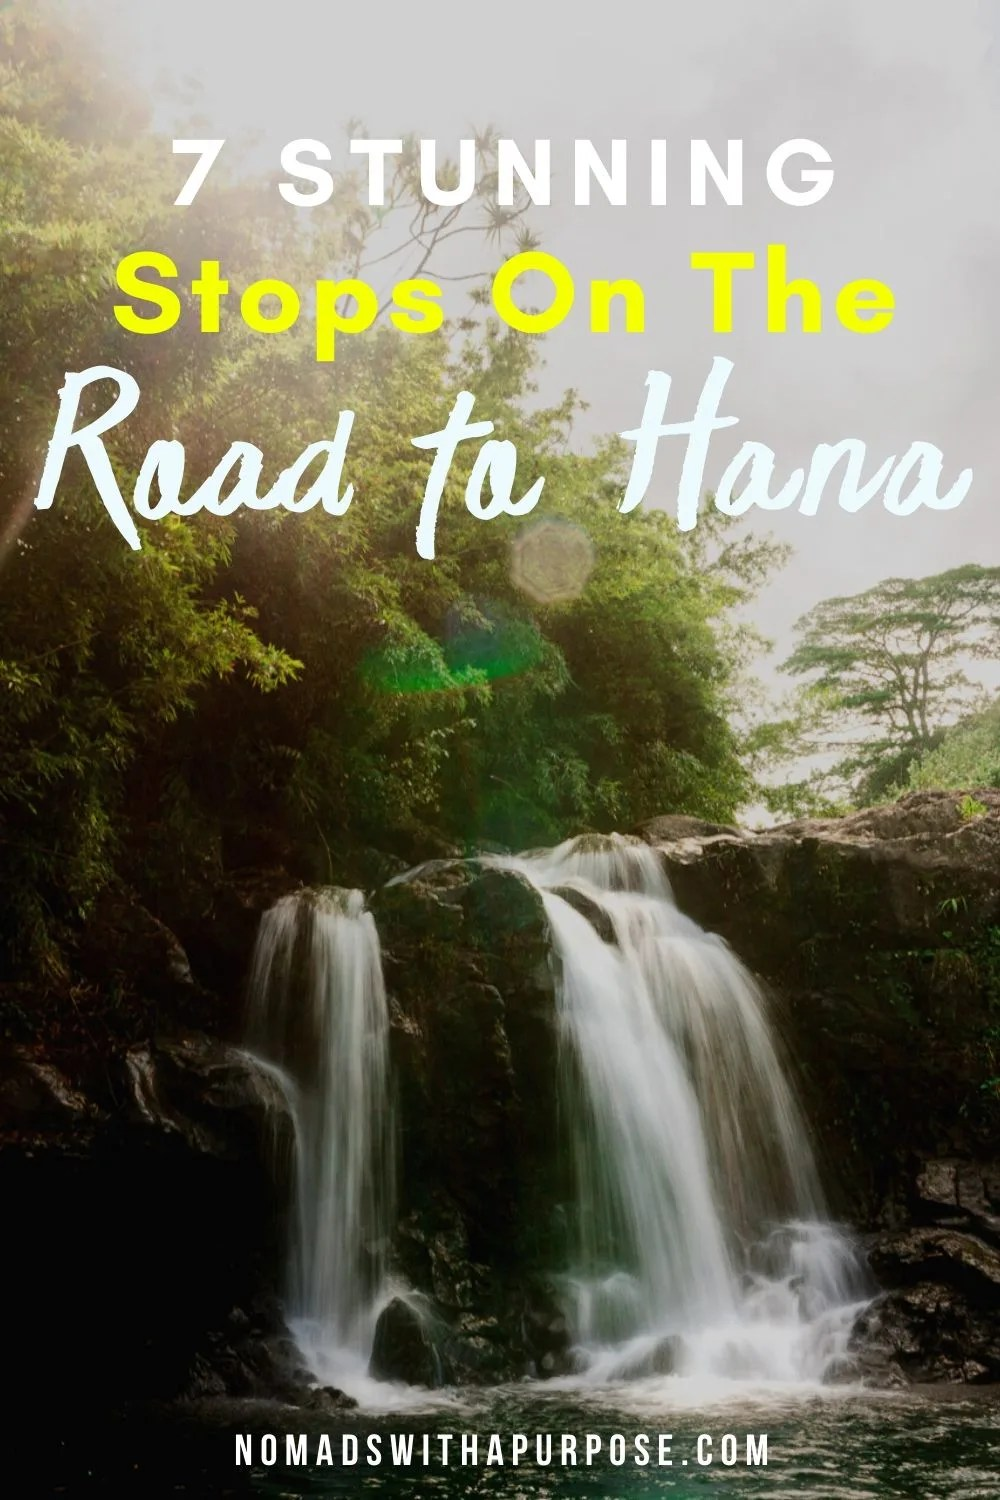 7 stunning stops on the Road to Hana